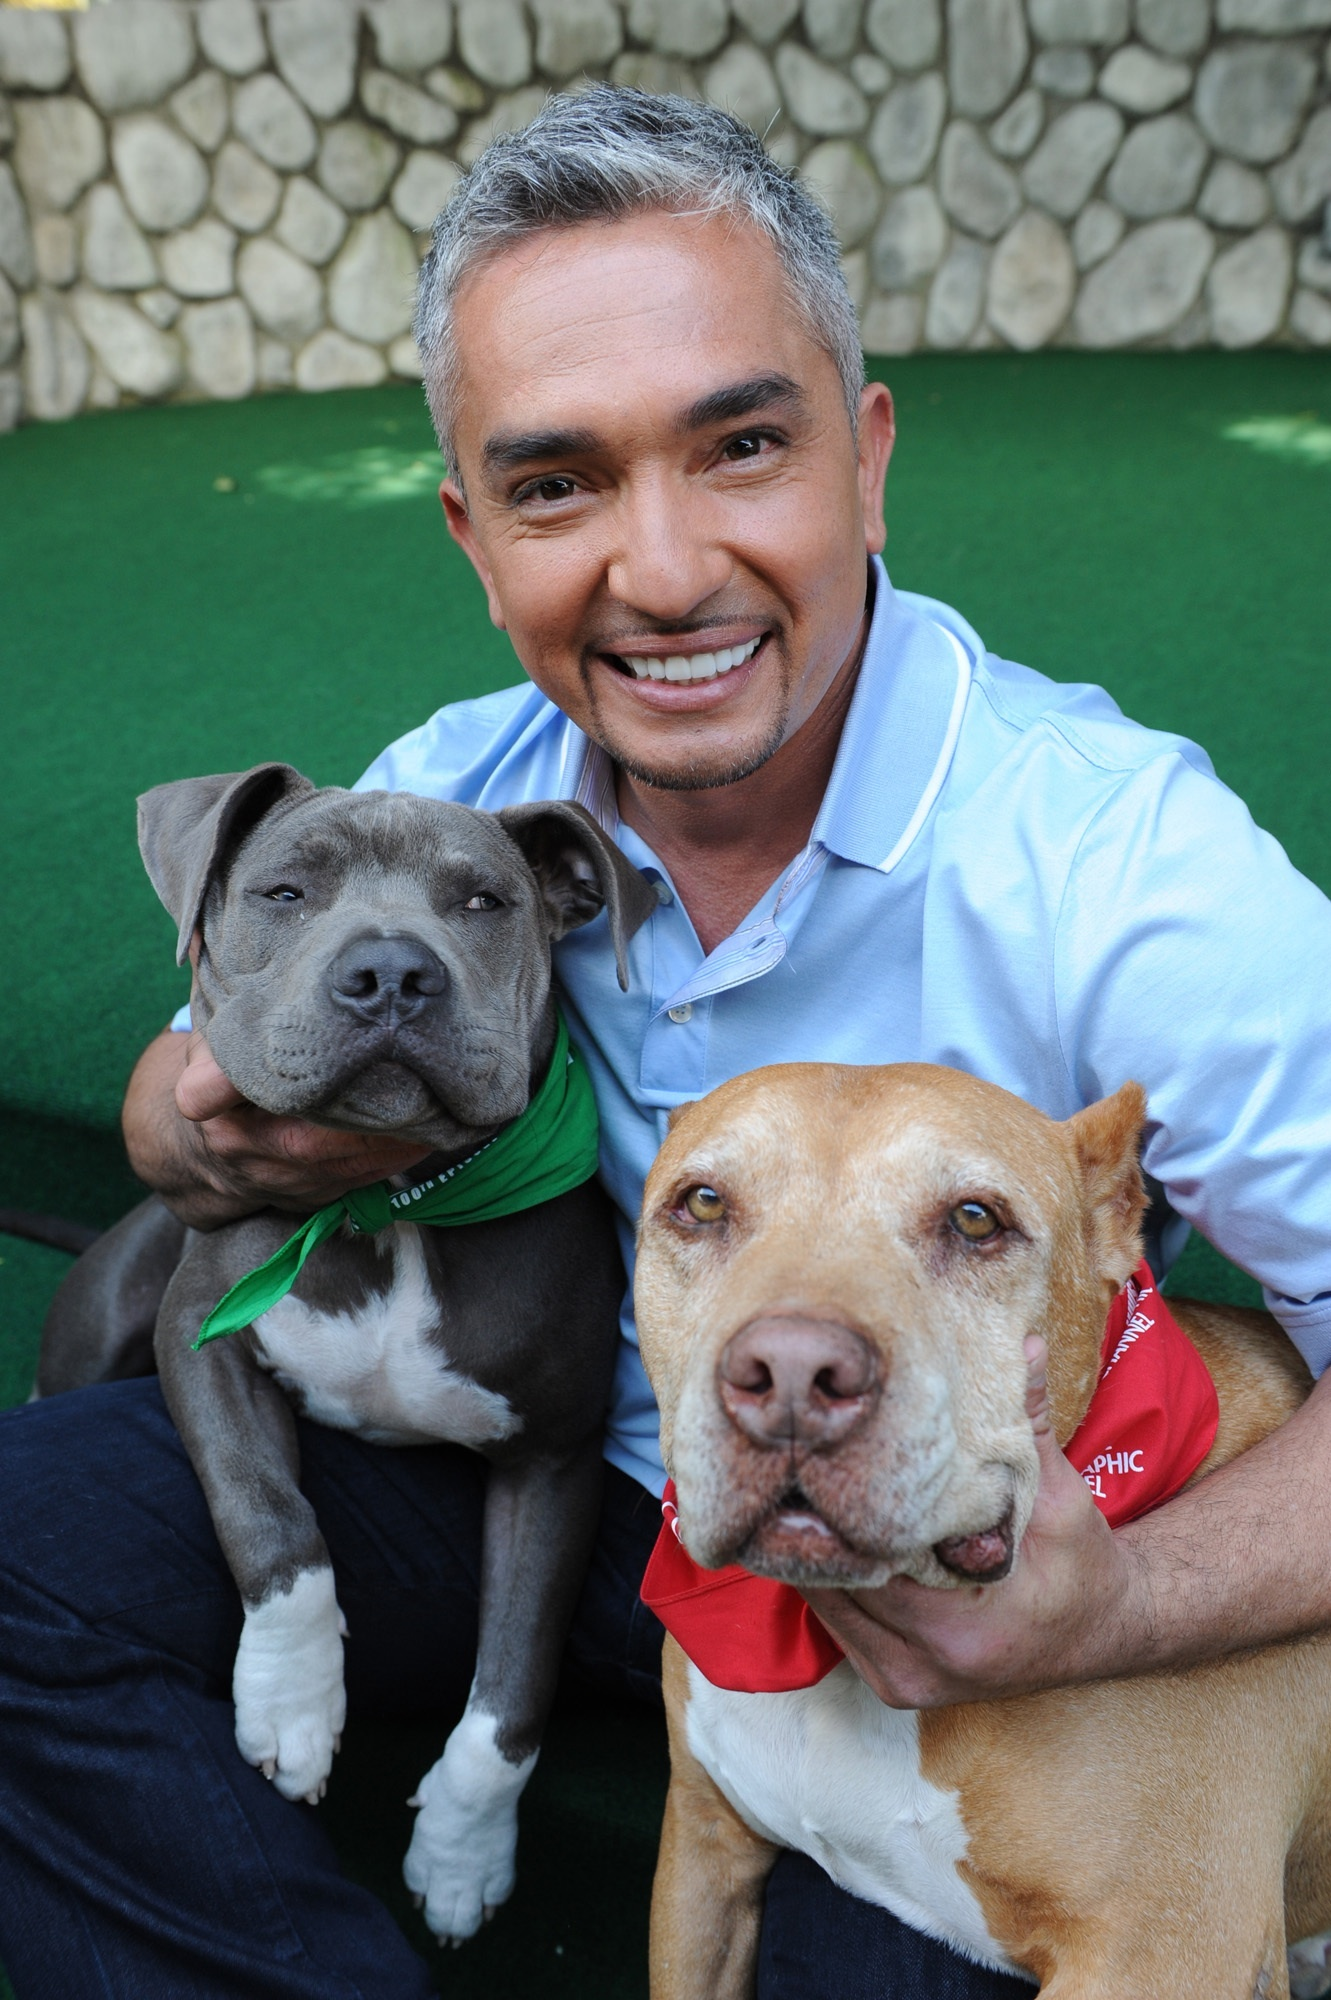 Cesar millan did you know daddy has died